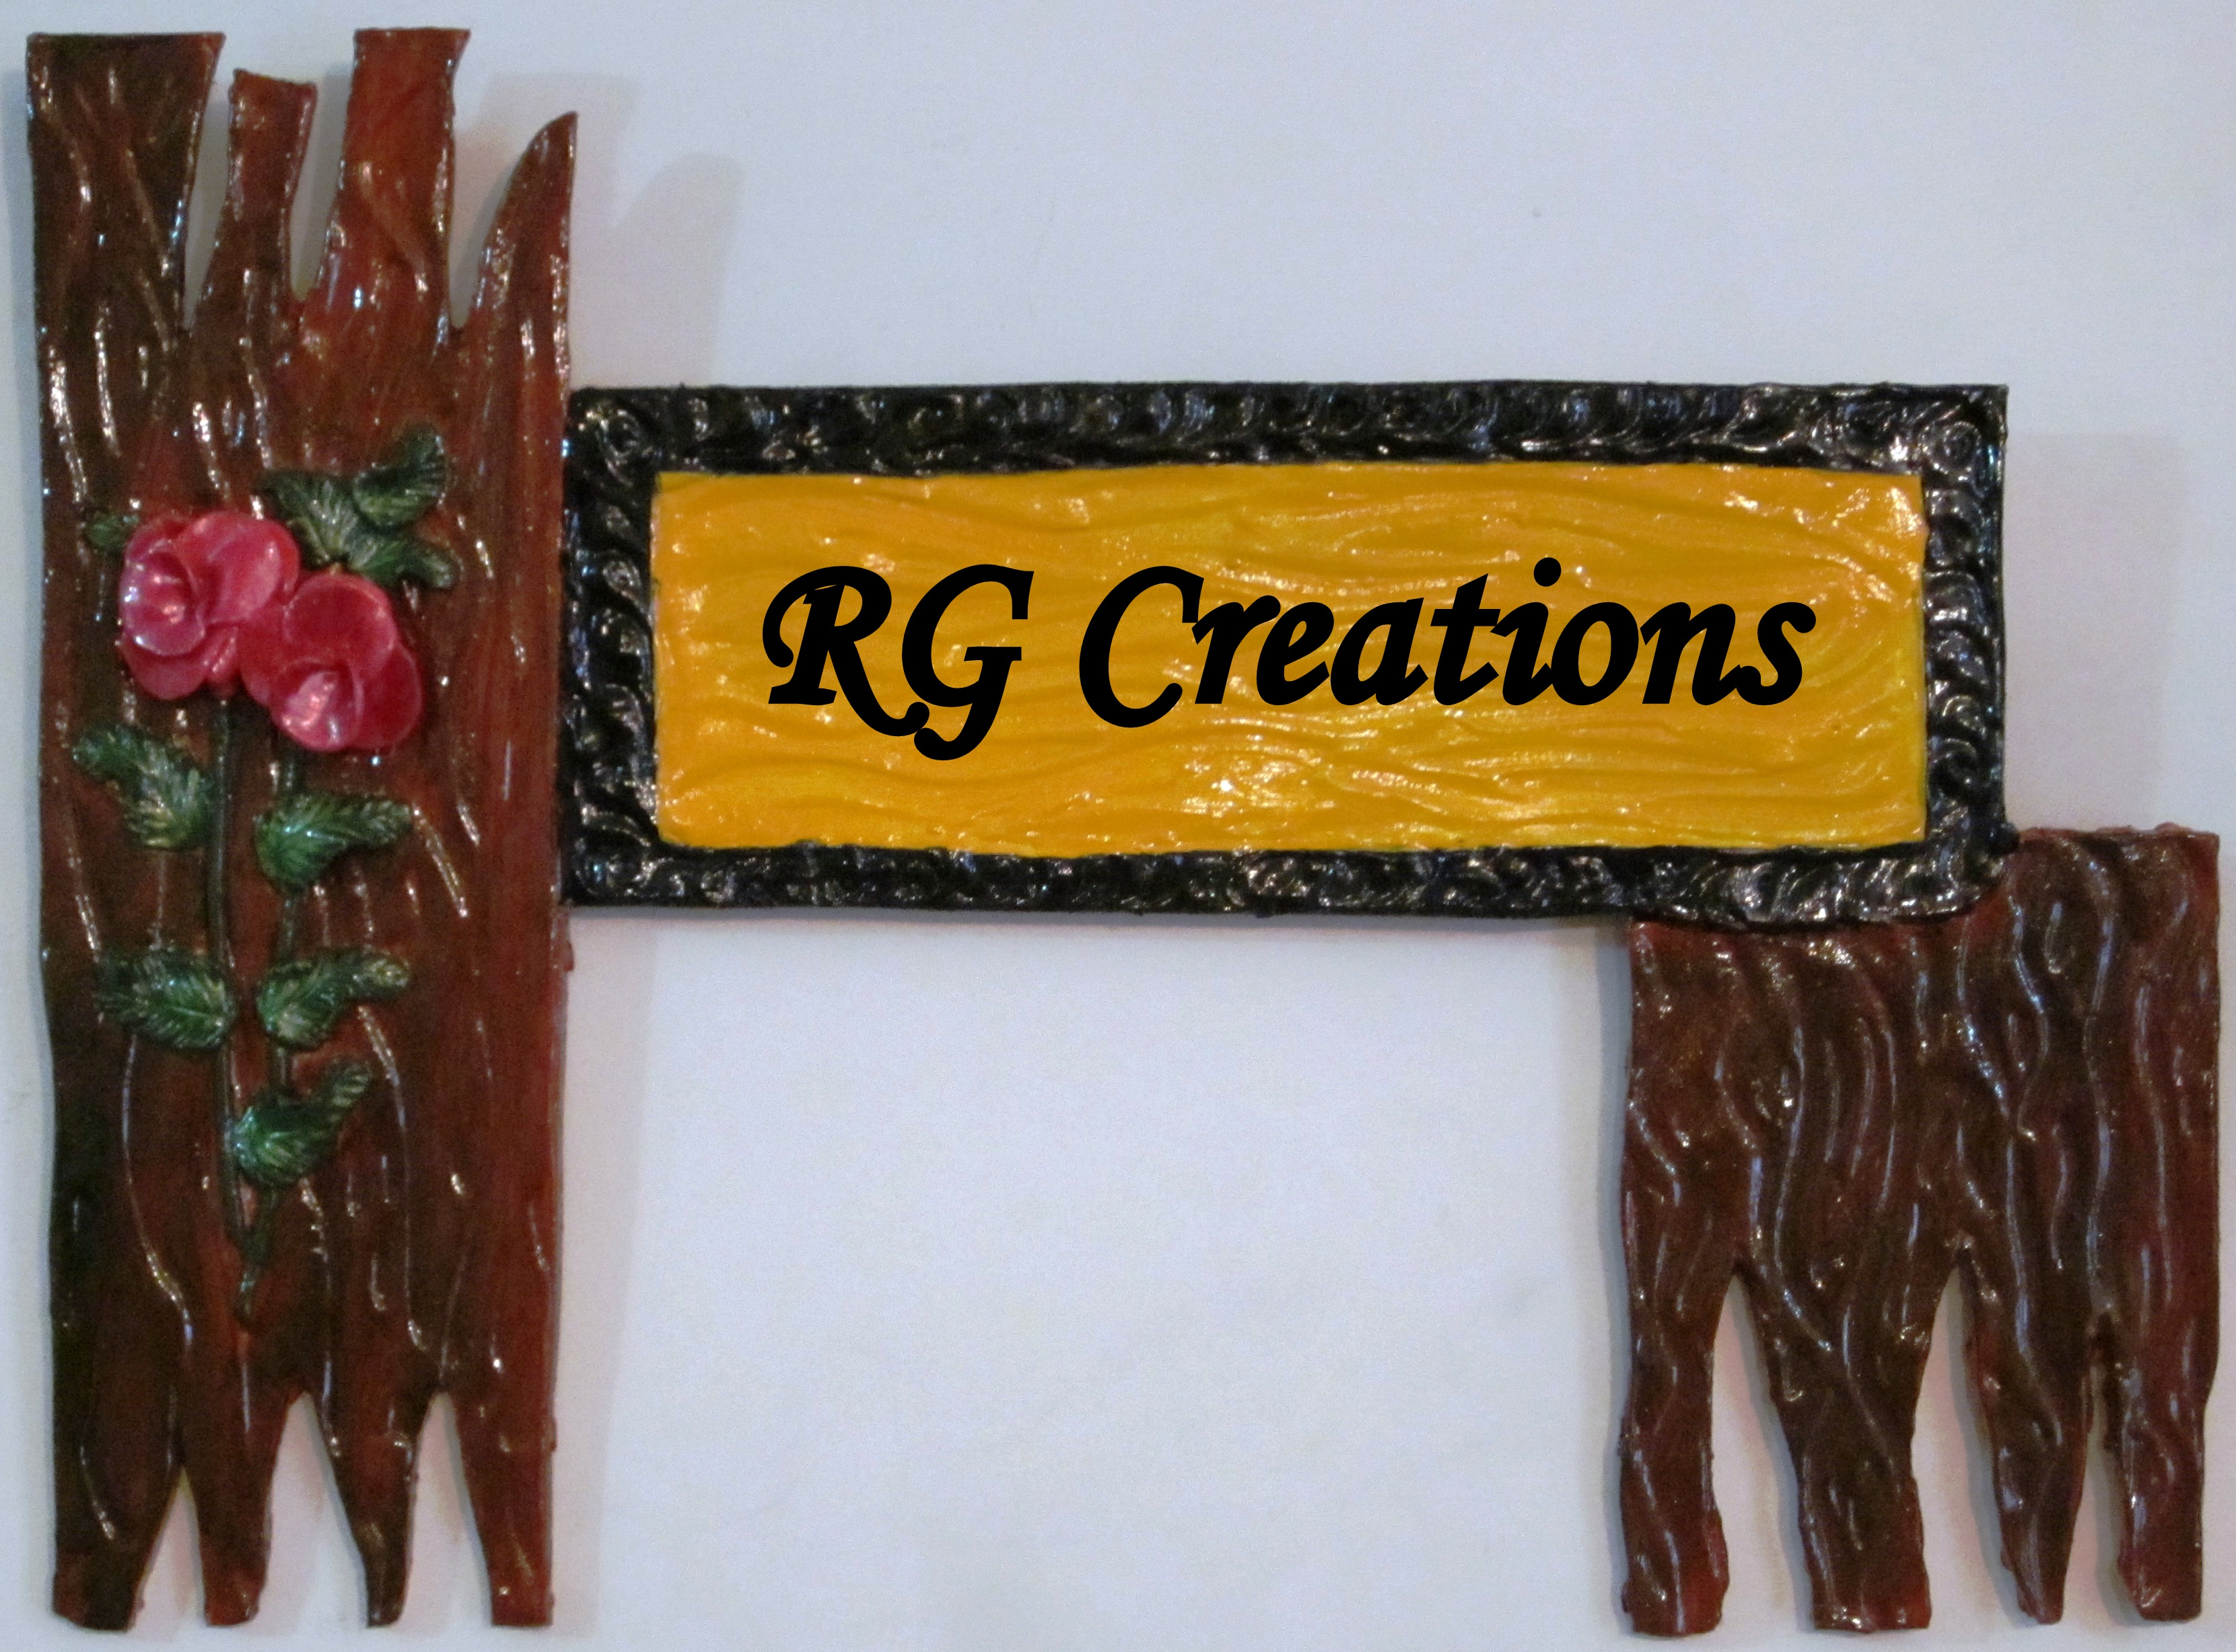 Decorative Name Plates For Home: Handmade Products For Home Decor